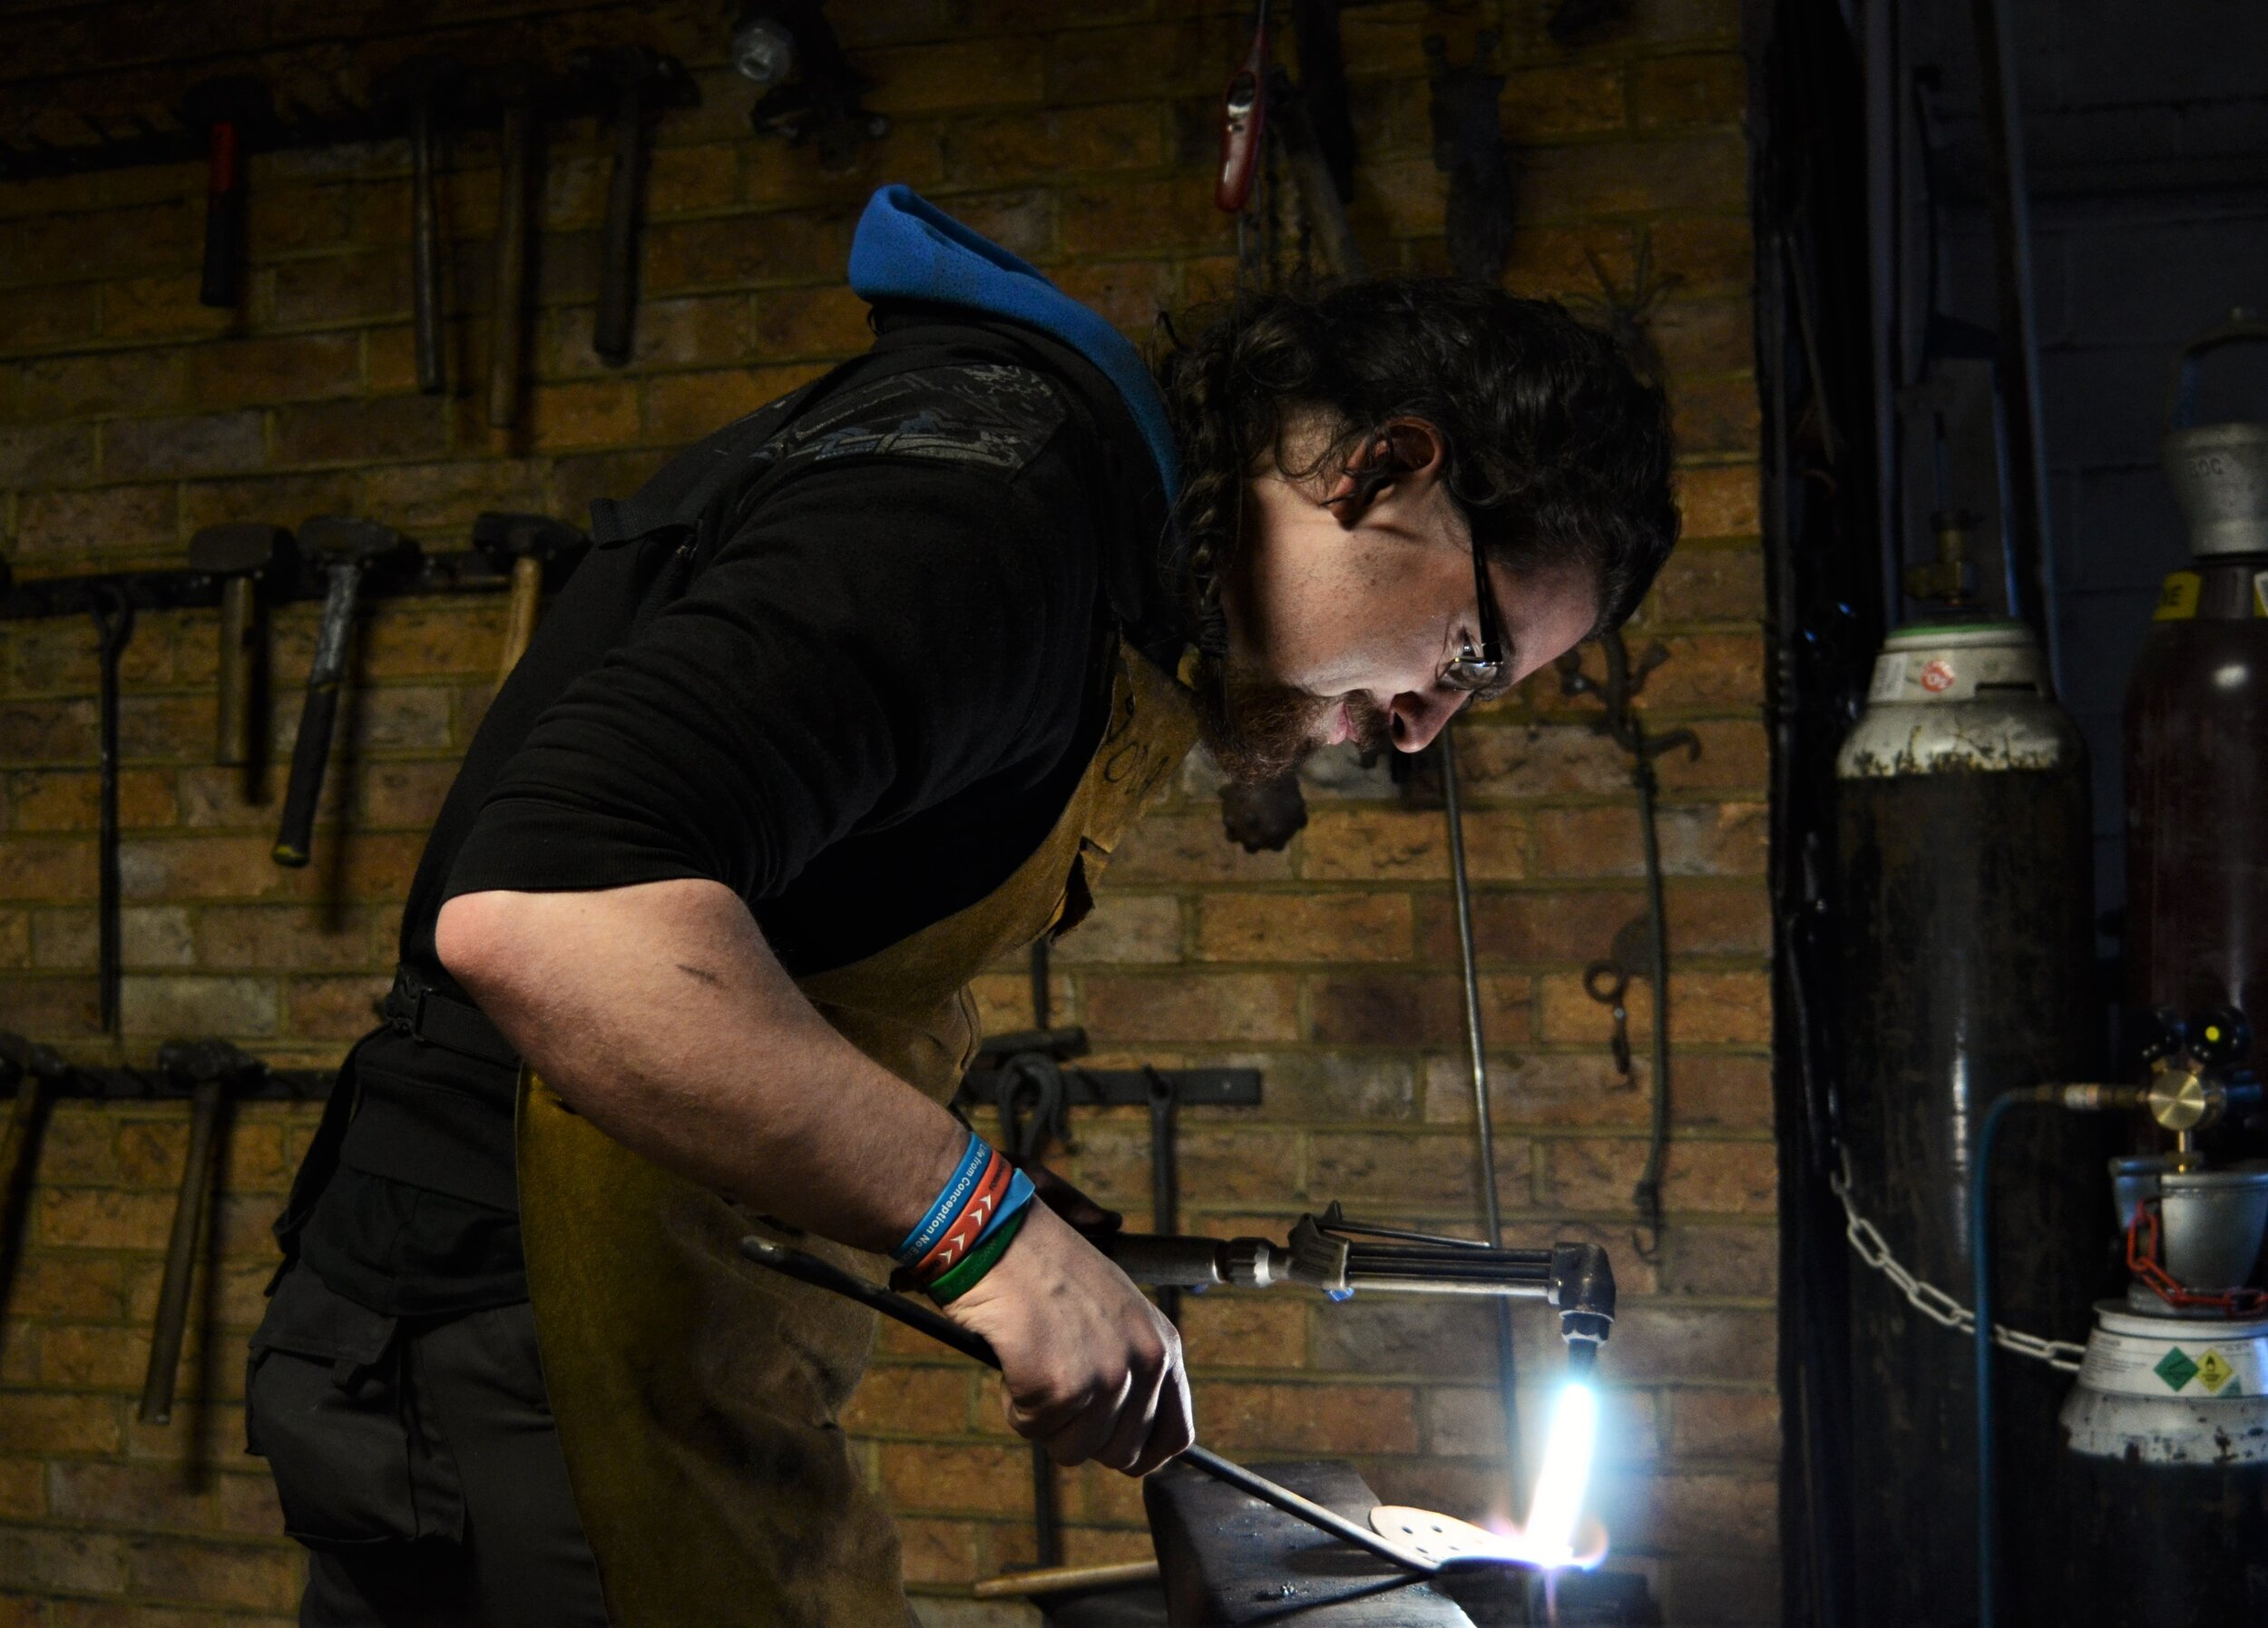 Aidan - blacksmith - Aidan is a talented blacksmith. He joined us a few years ago for work experience before studying blacksmithing at Hereford and then returning to share his knowledge.